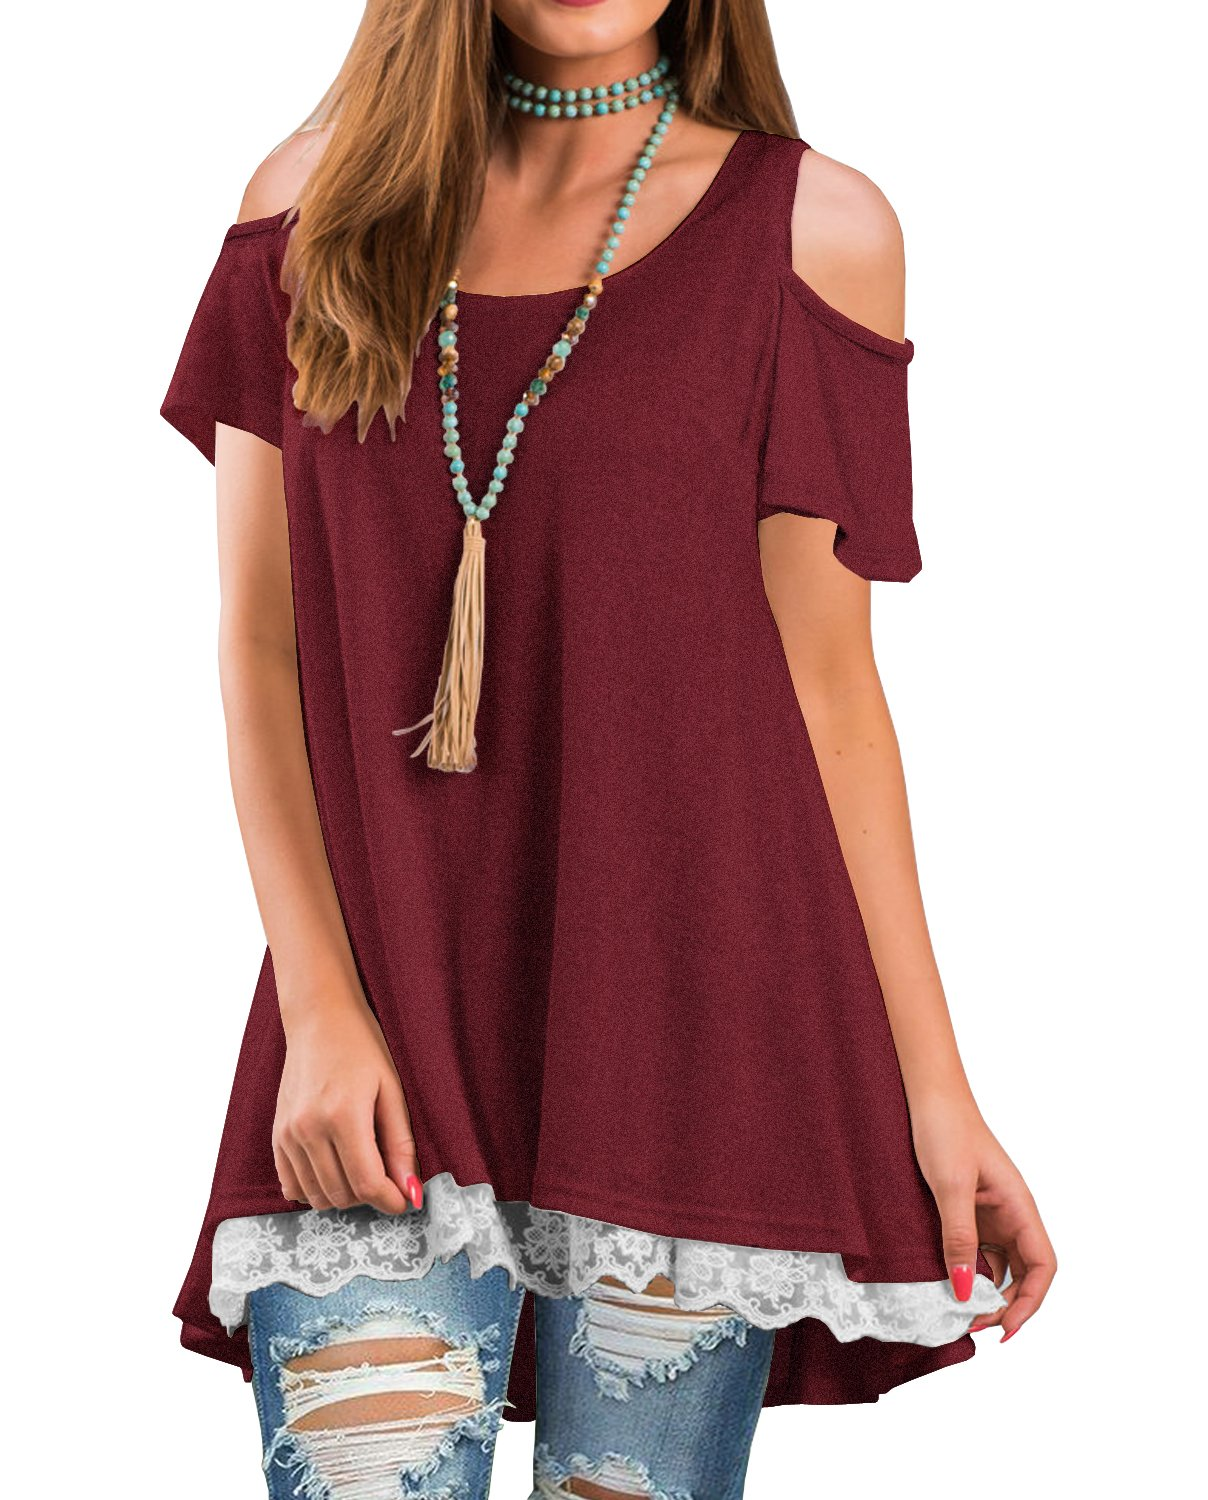 QIXING Women's Cold Shoulder Casual Tops Lace Hem Short Sleeve Tunic Blouse Wine Red-L